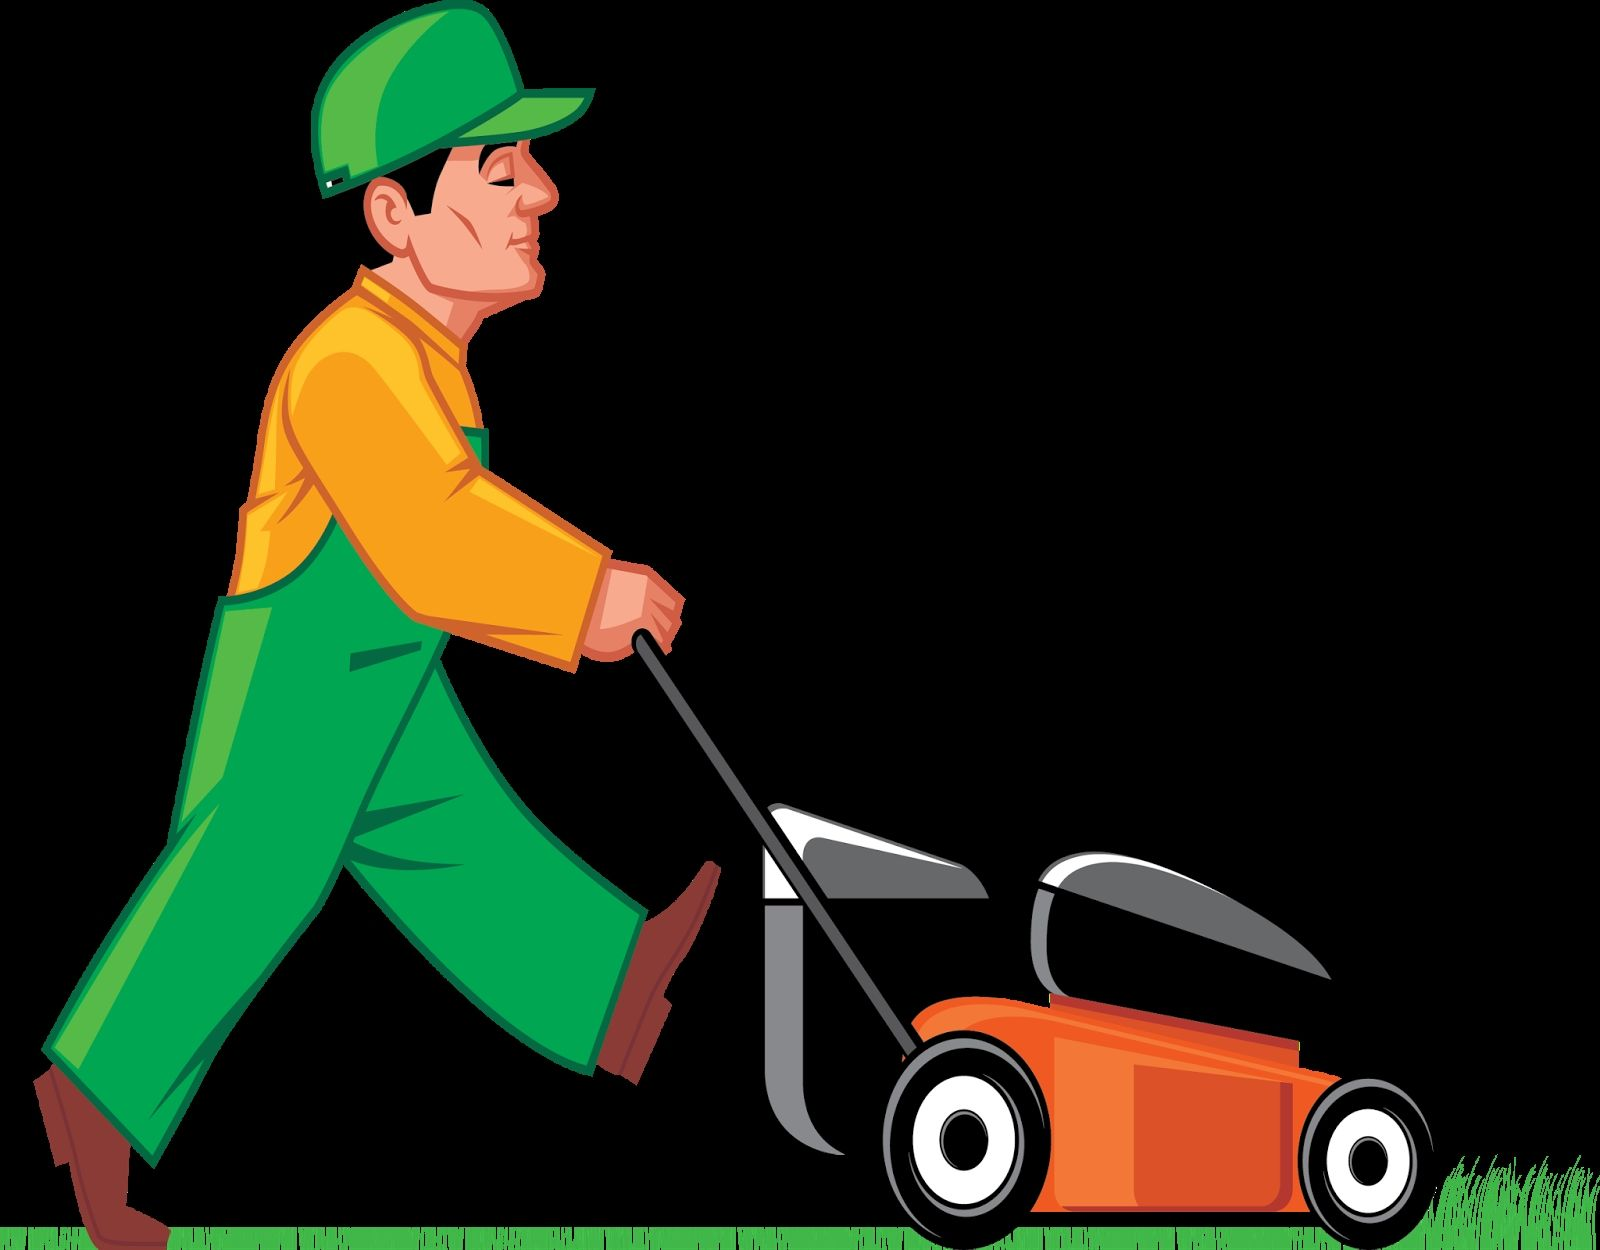 Lawn Mowing Clipart Images In 2021 Lawn Mower Best Lawn Mower Clip Art